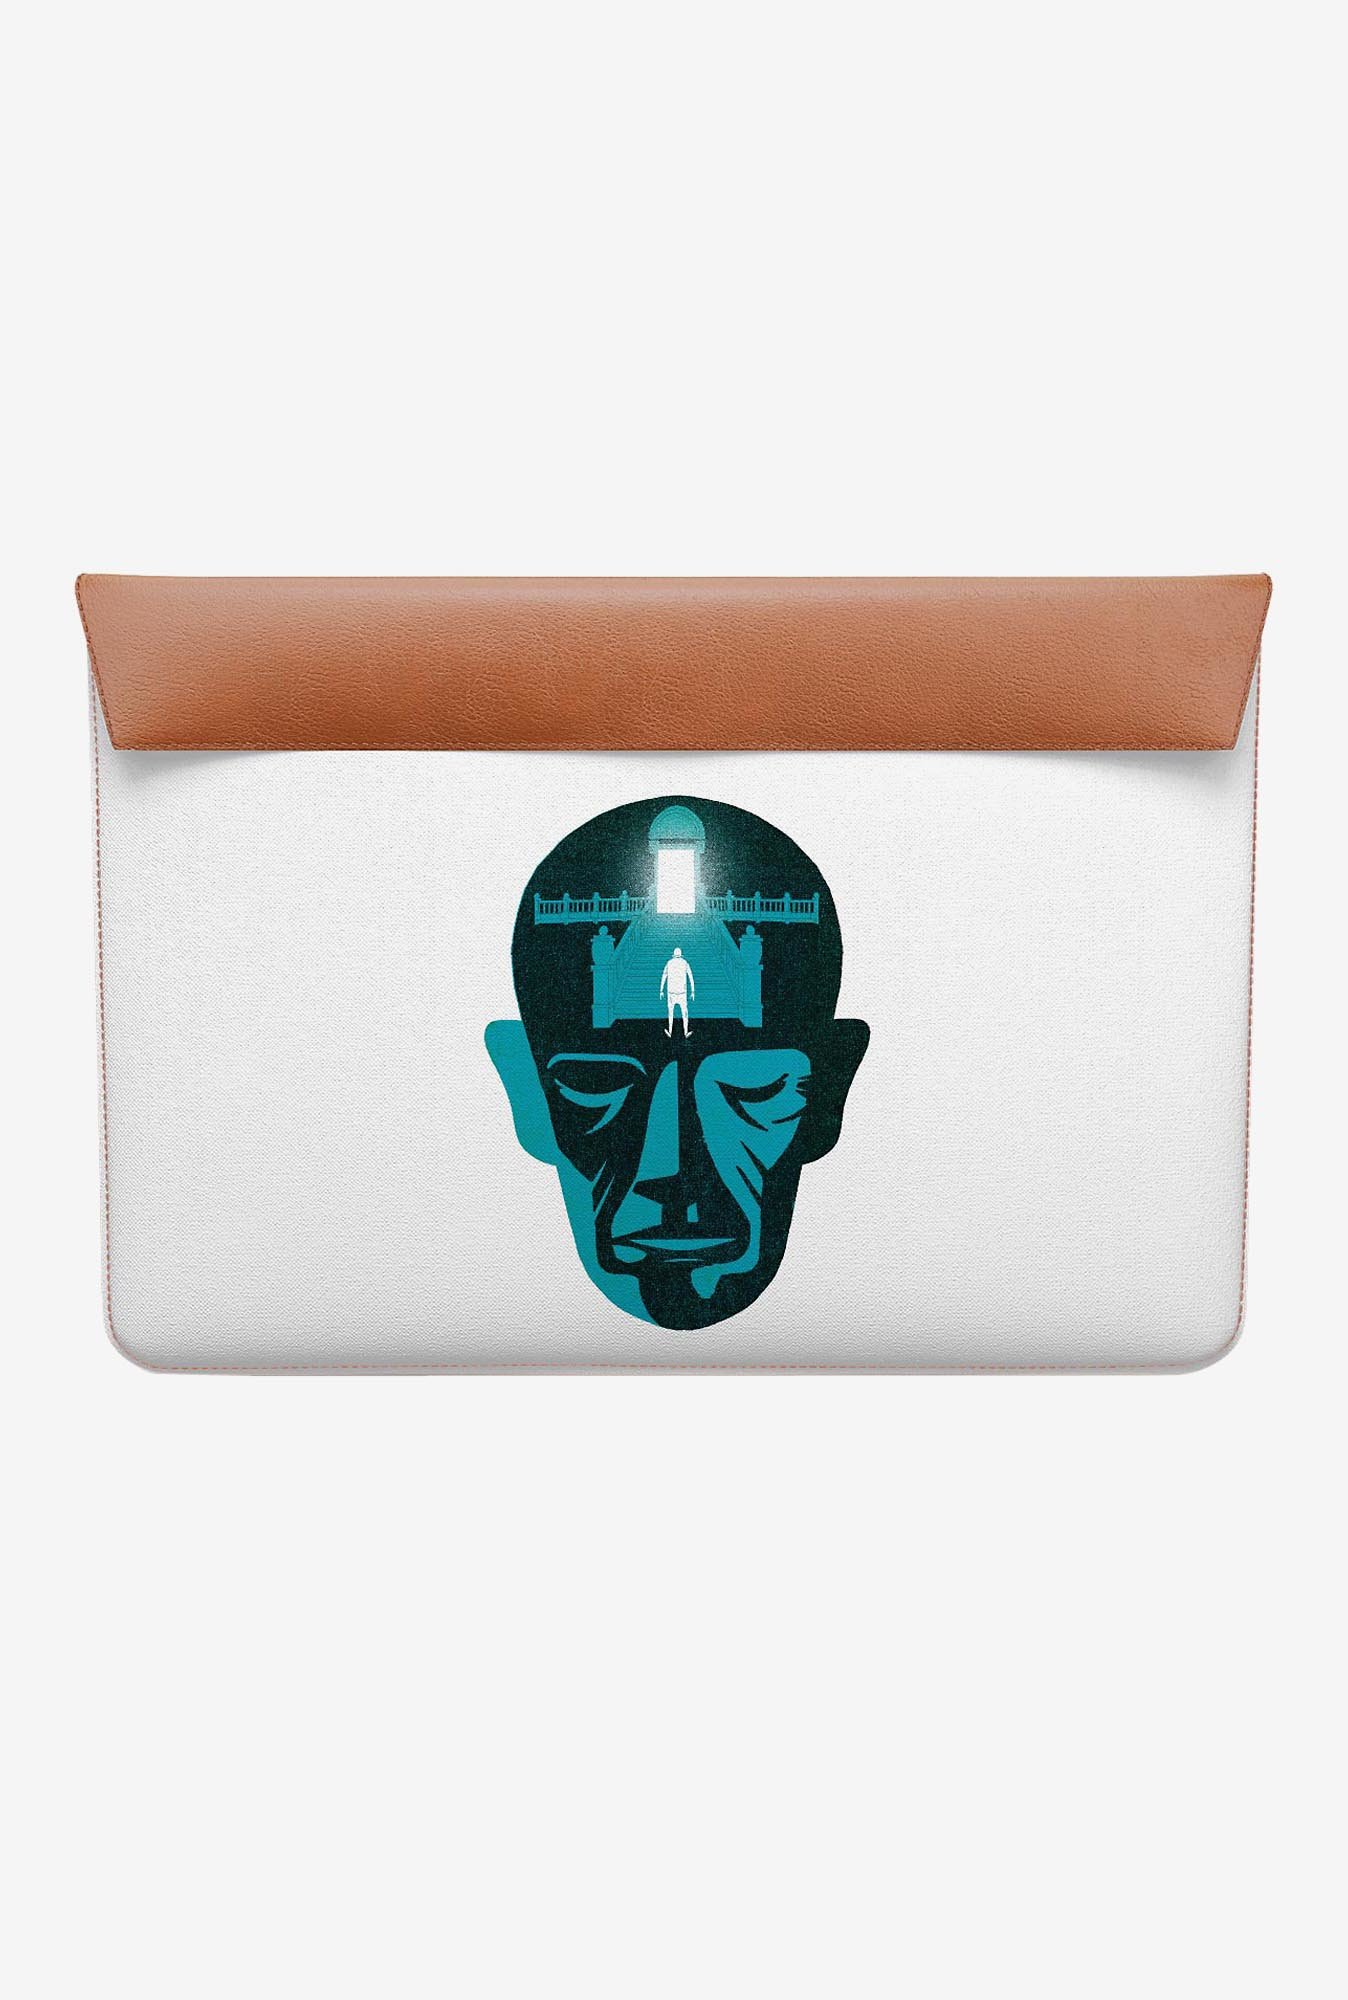 DailyObjects Open Your Mind MacBook Air 11 Envelope Sleeve